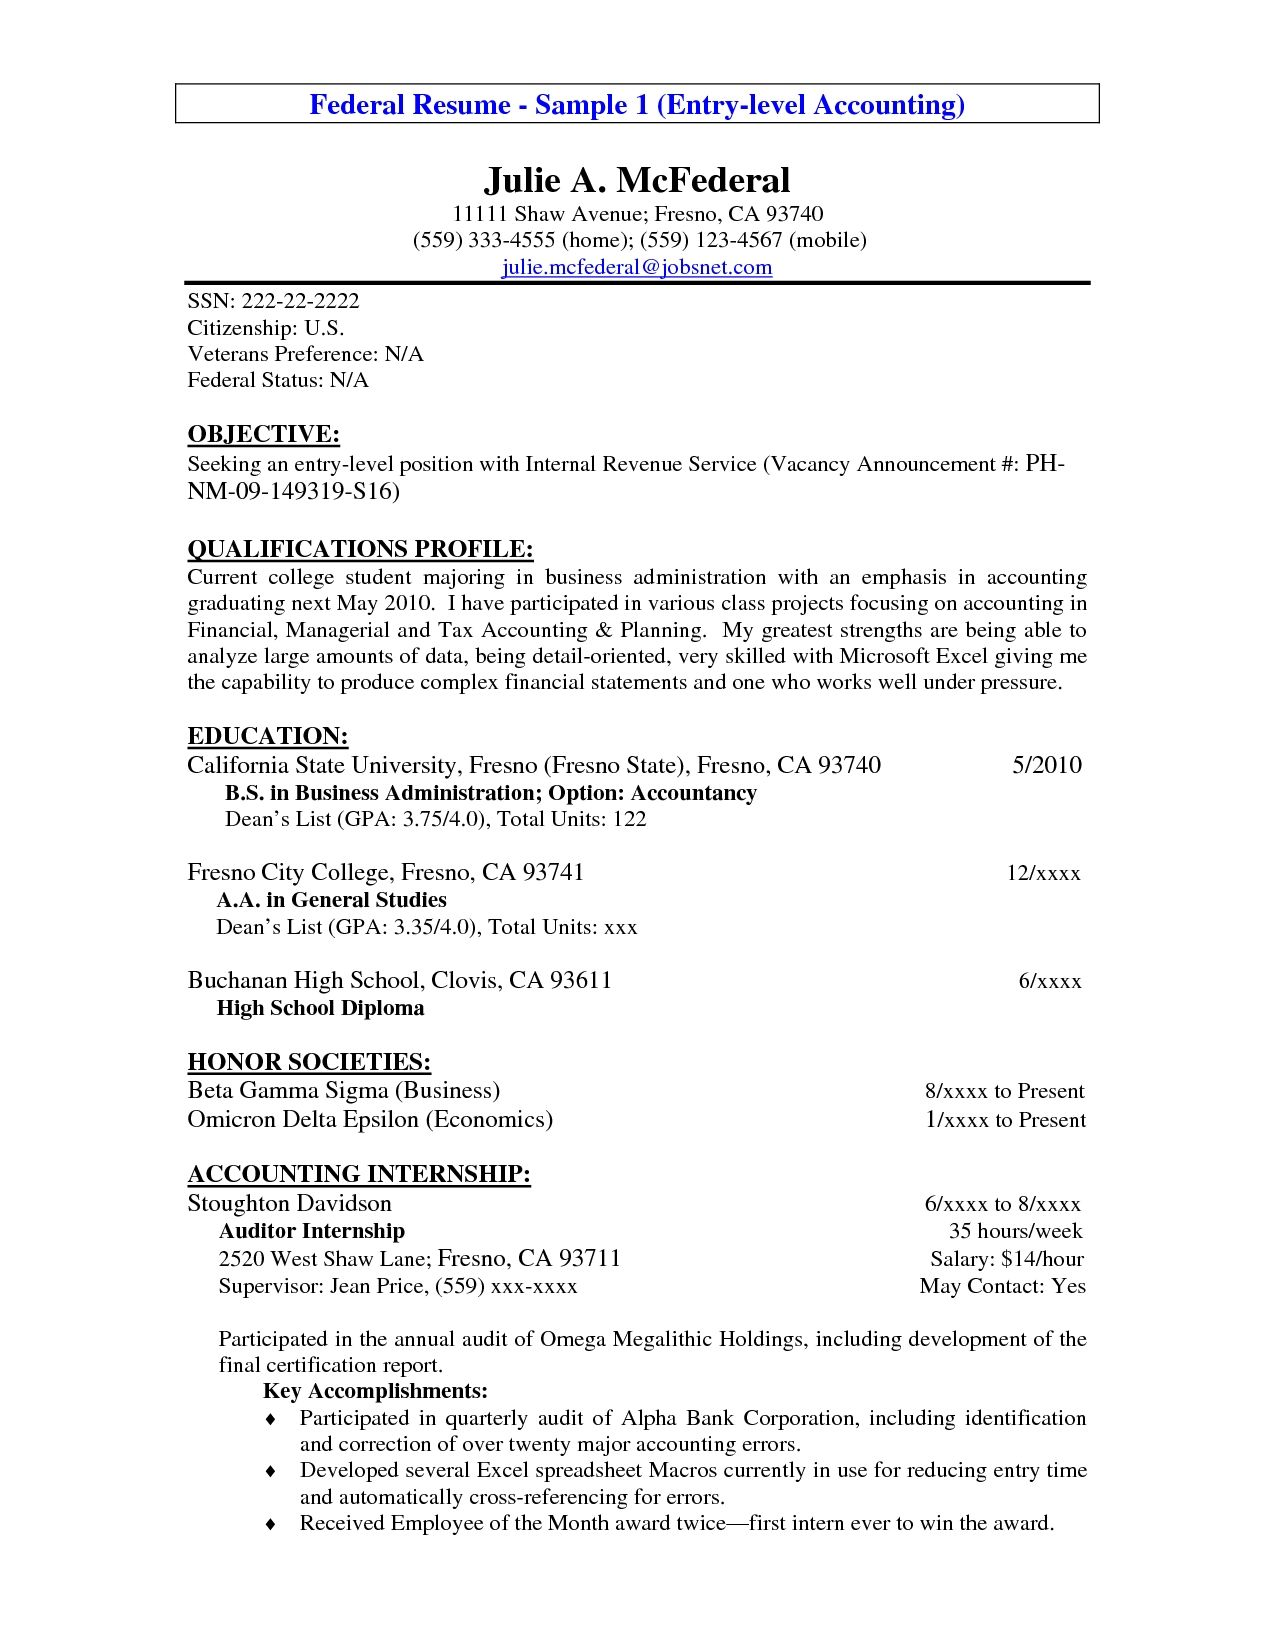 entry level resume example entry level accounting resume sample gallery photos - How To Write A Entry Level Resume